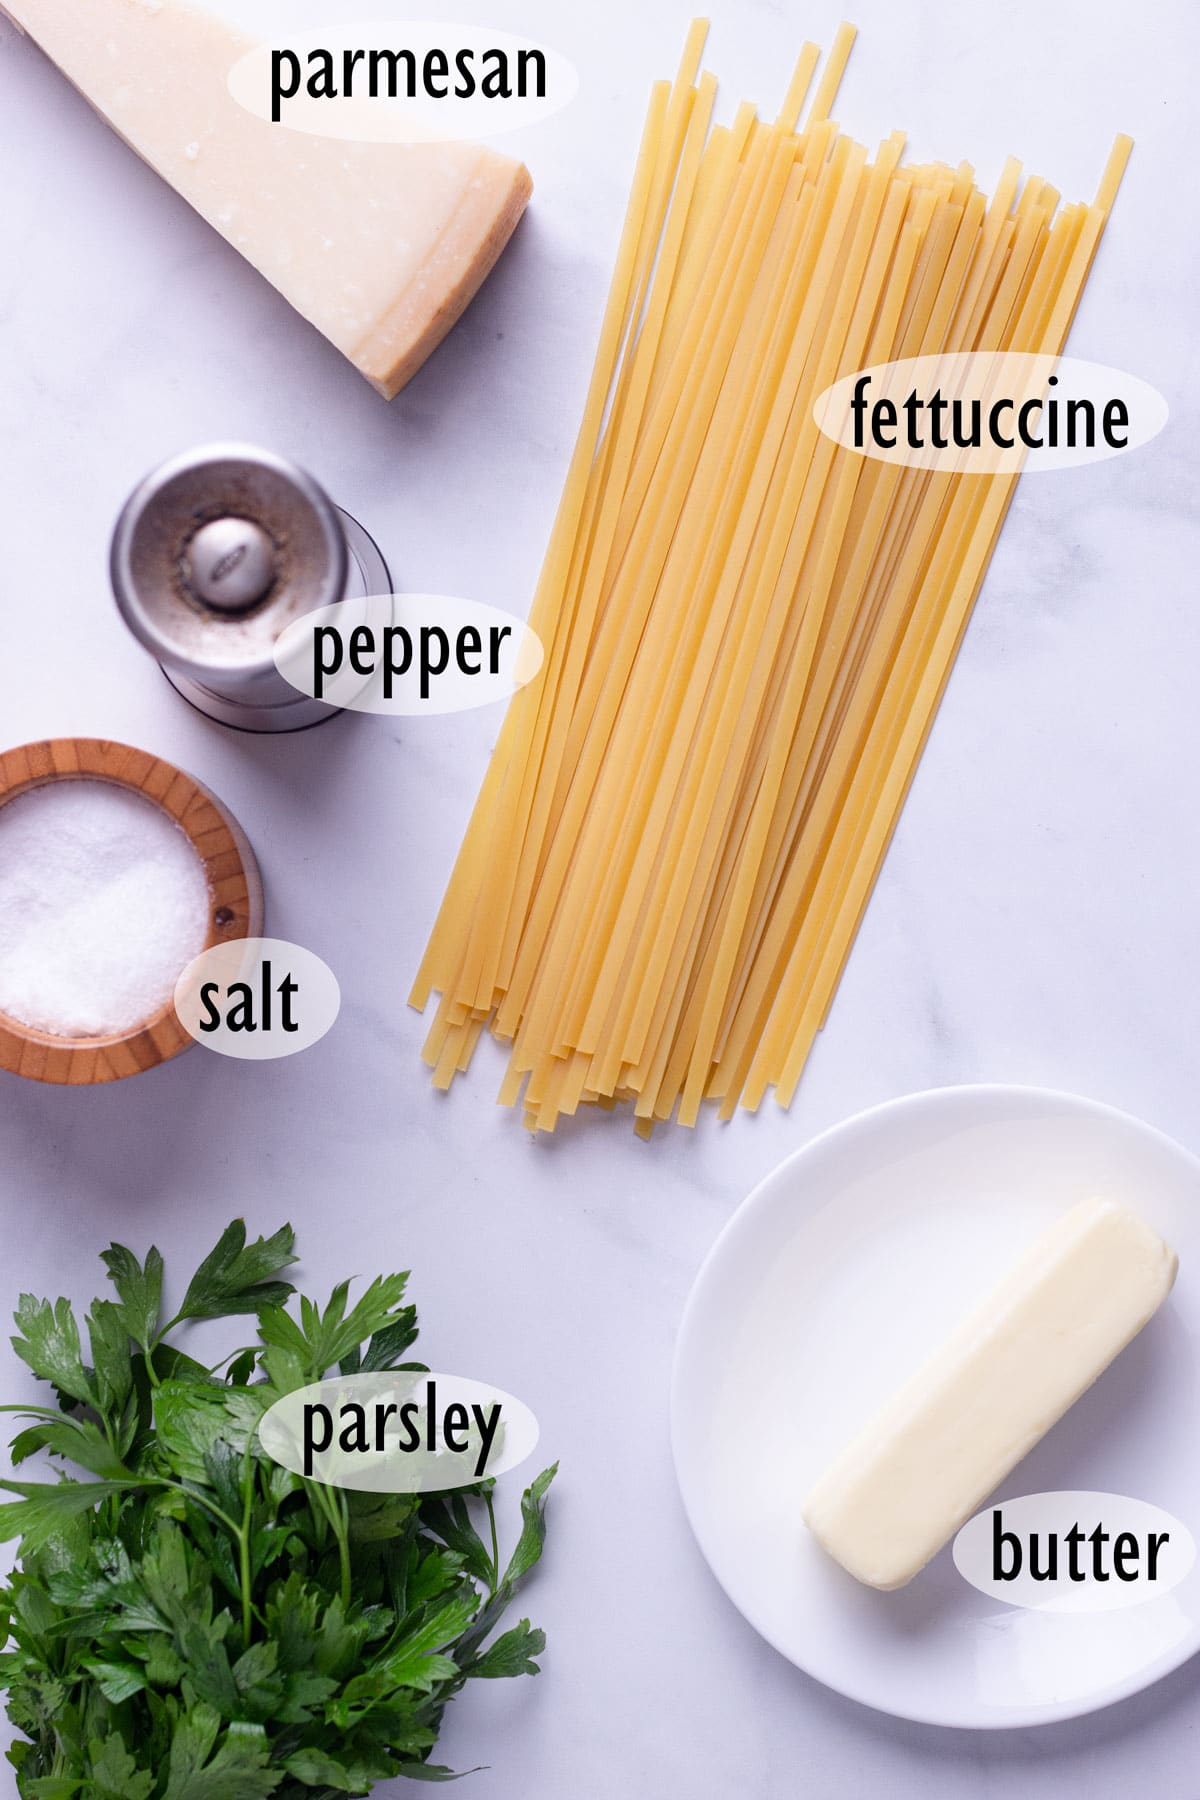 Ingredients used for pasta dish including fettuccine, parmesan cheese, butter and parsley.